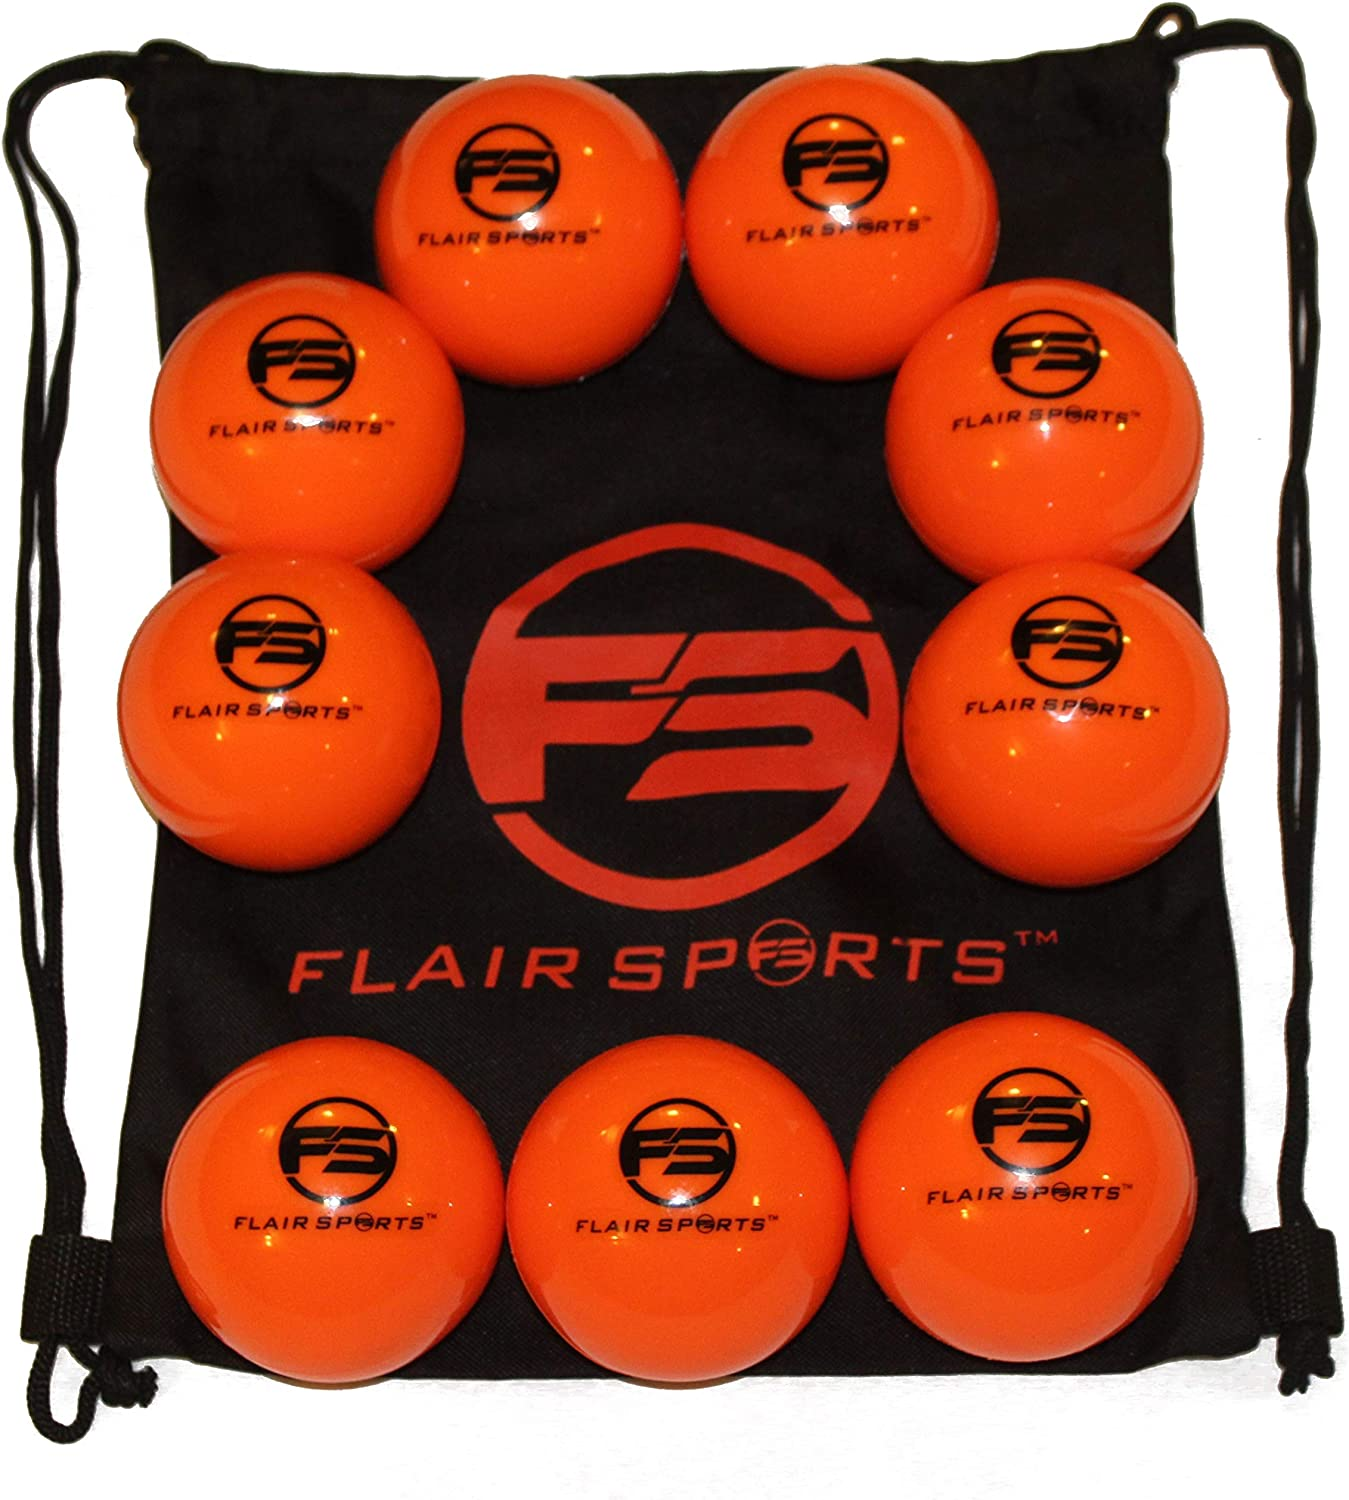 """Flair Sports - 9 Pack Baseball and Softball Weighted Training Heavy Balls for Hitting and Pitching - Improve Power - Bonus Carry Bag Included (16 Ounces and 3"""" Diameter) - Limited Flight"""